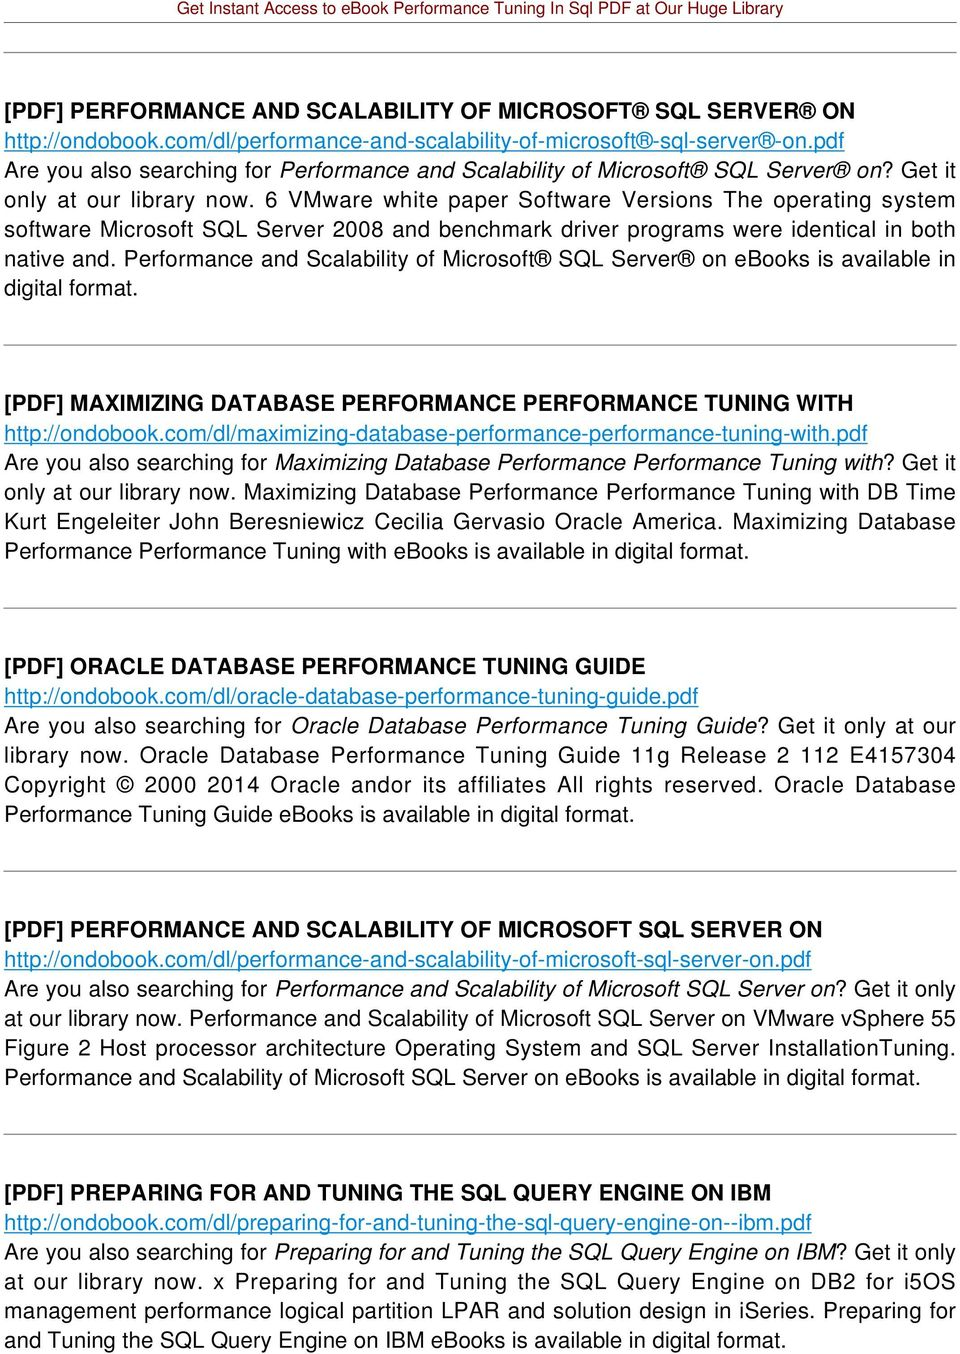 6 VMware white paper Software Versions The operating system software Microsoft SQL Server 2008 and benchmark driver programs were identical in both native and.